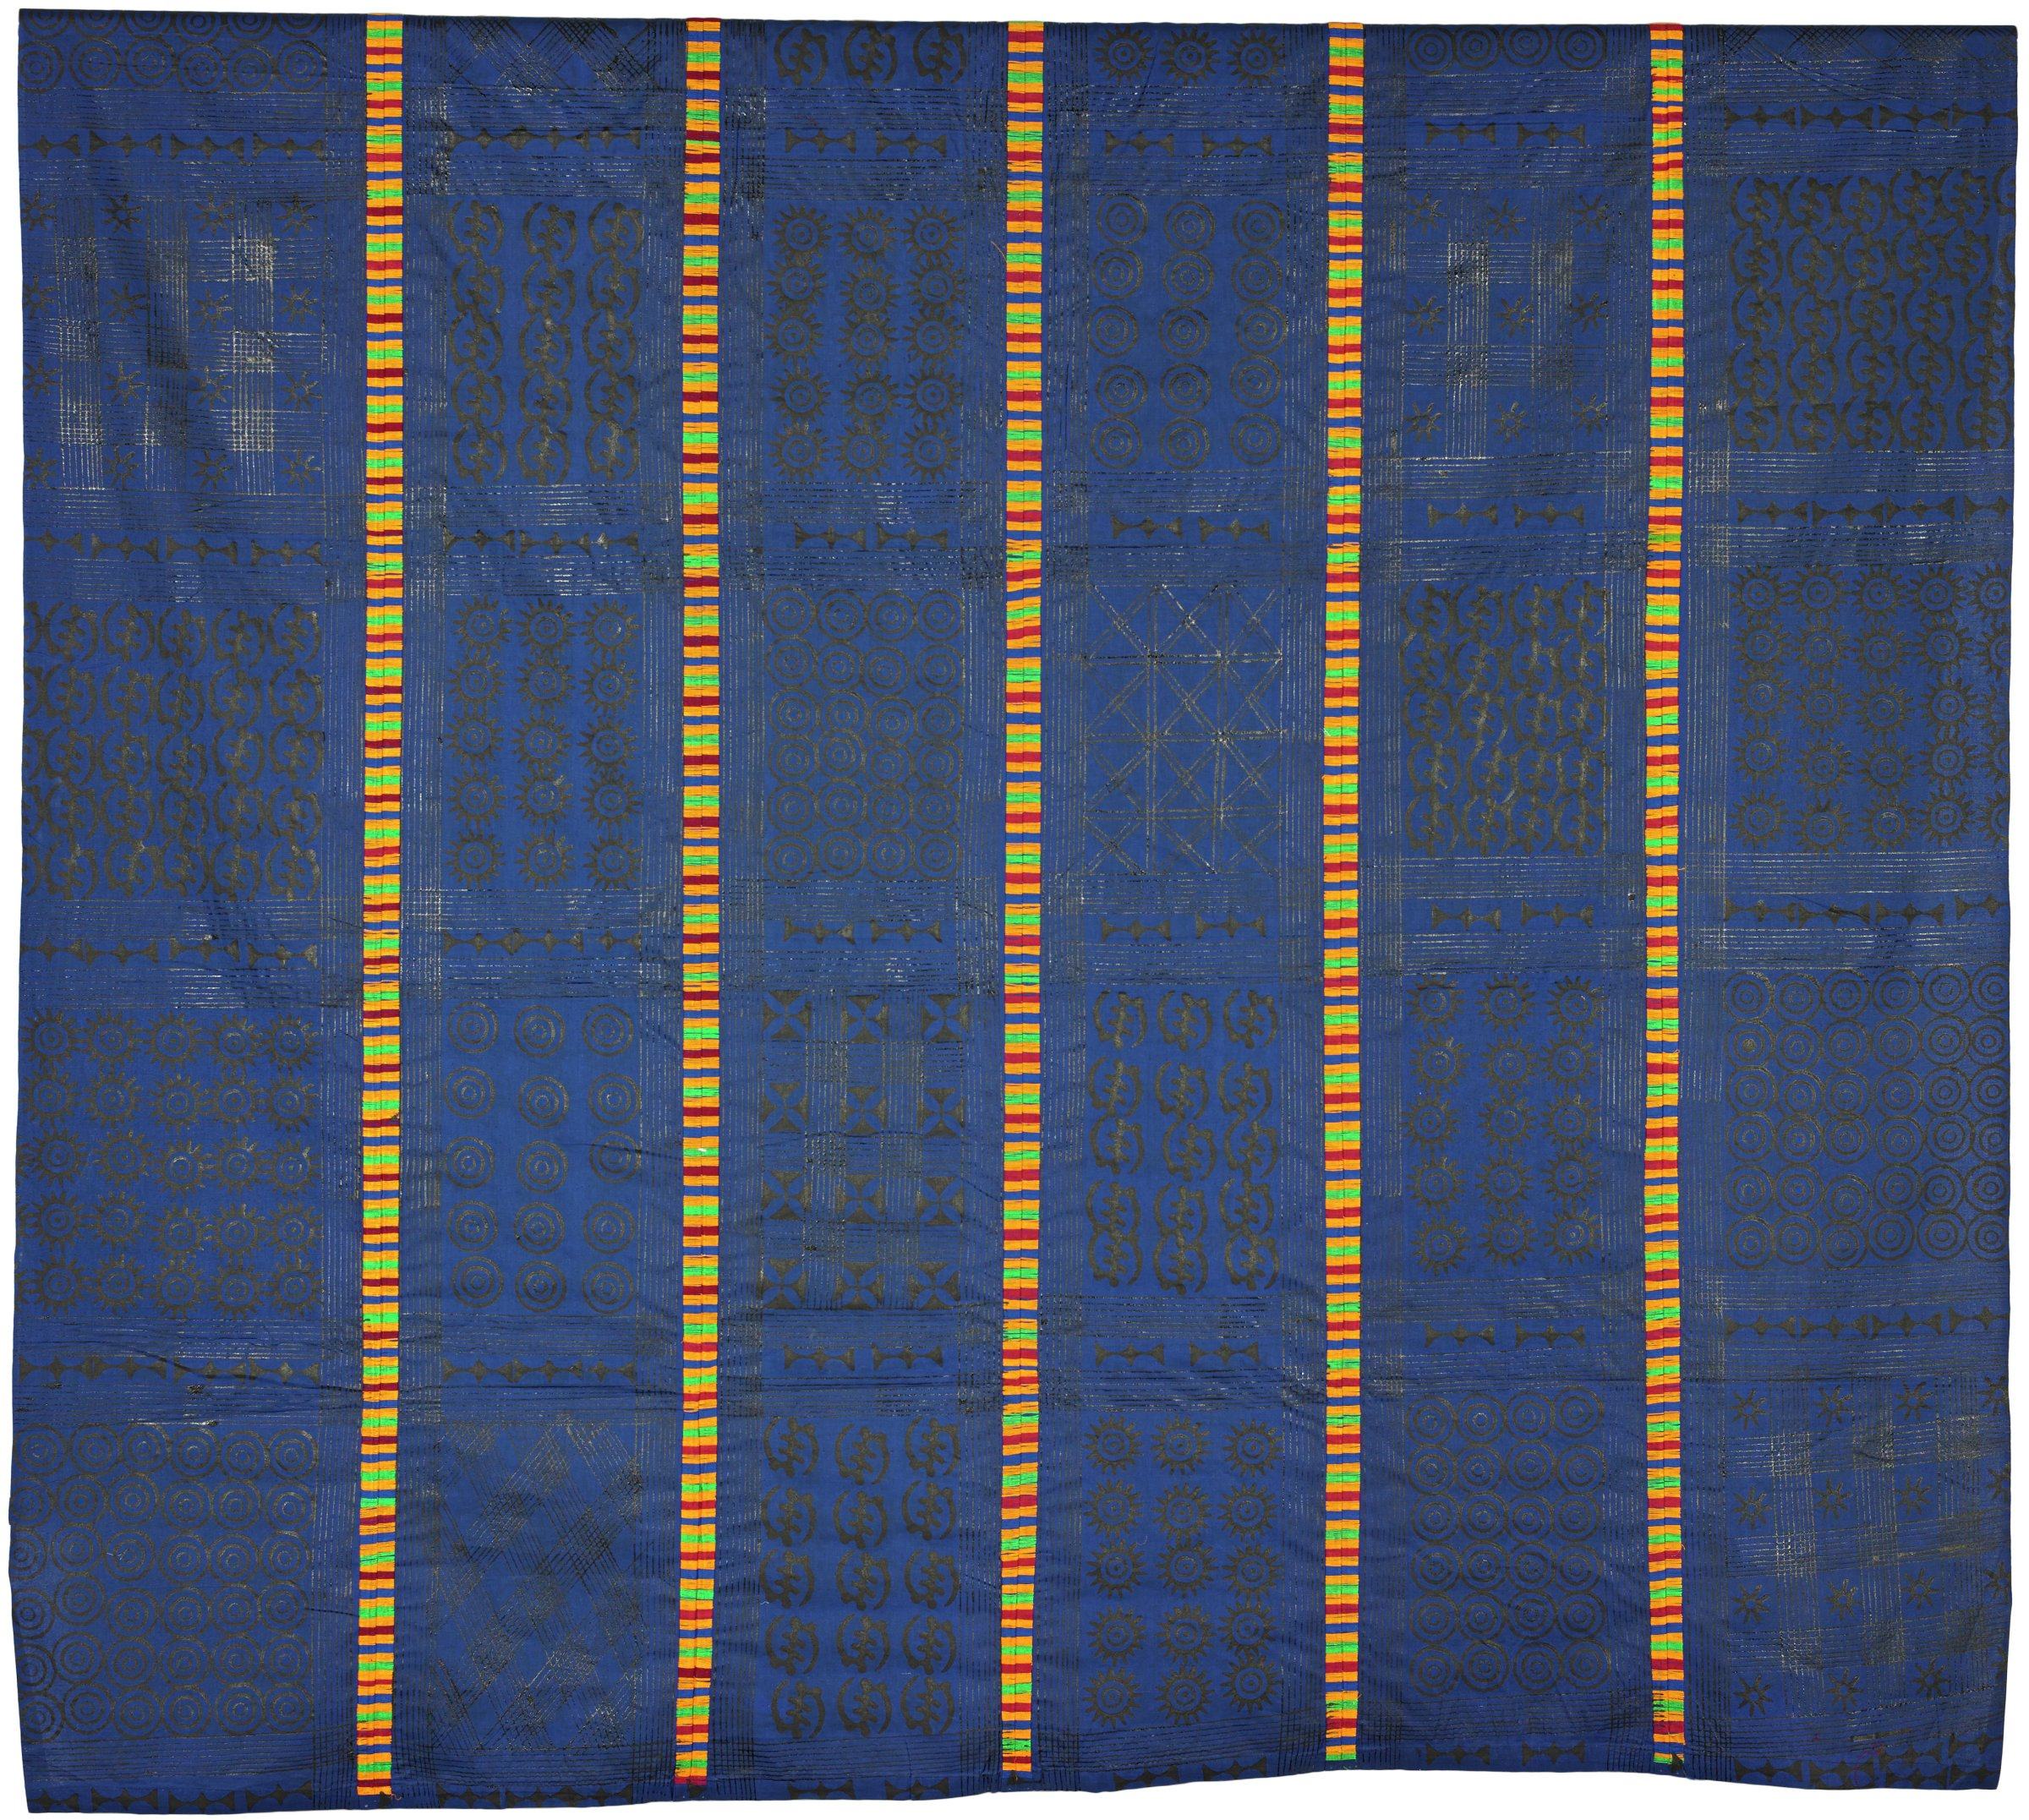 Wrapper (adinkra), Asante people, Ghana, African, cotton, homemade ink, embroidery